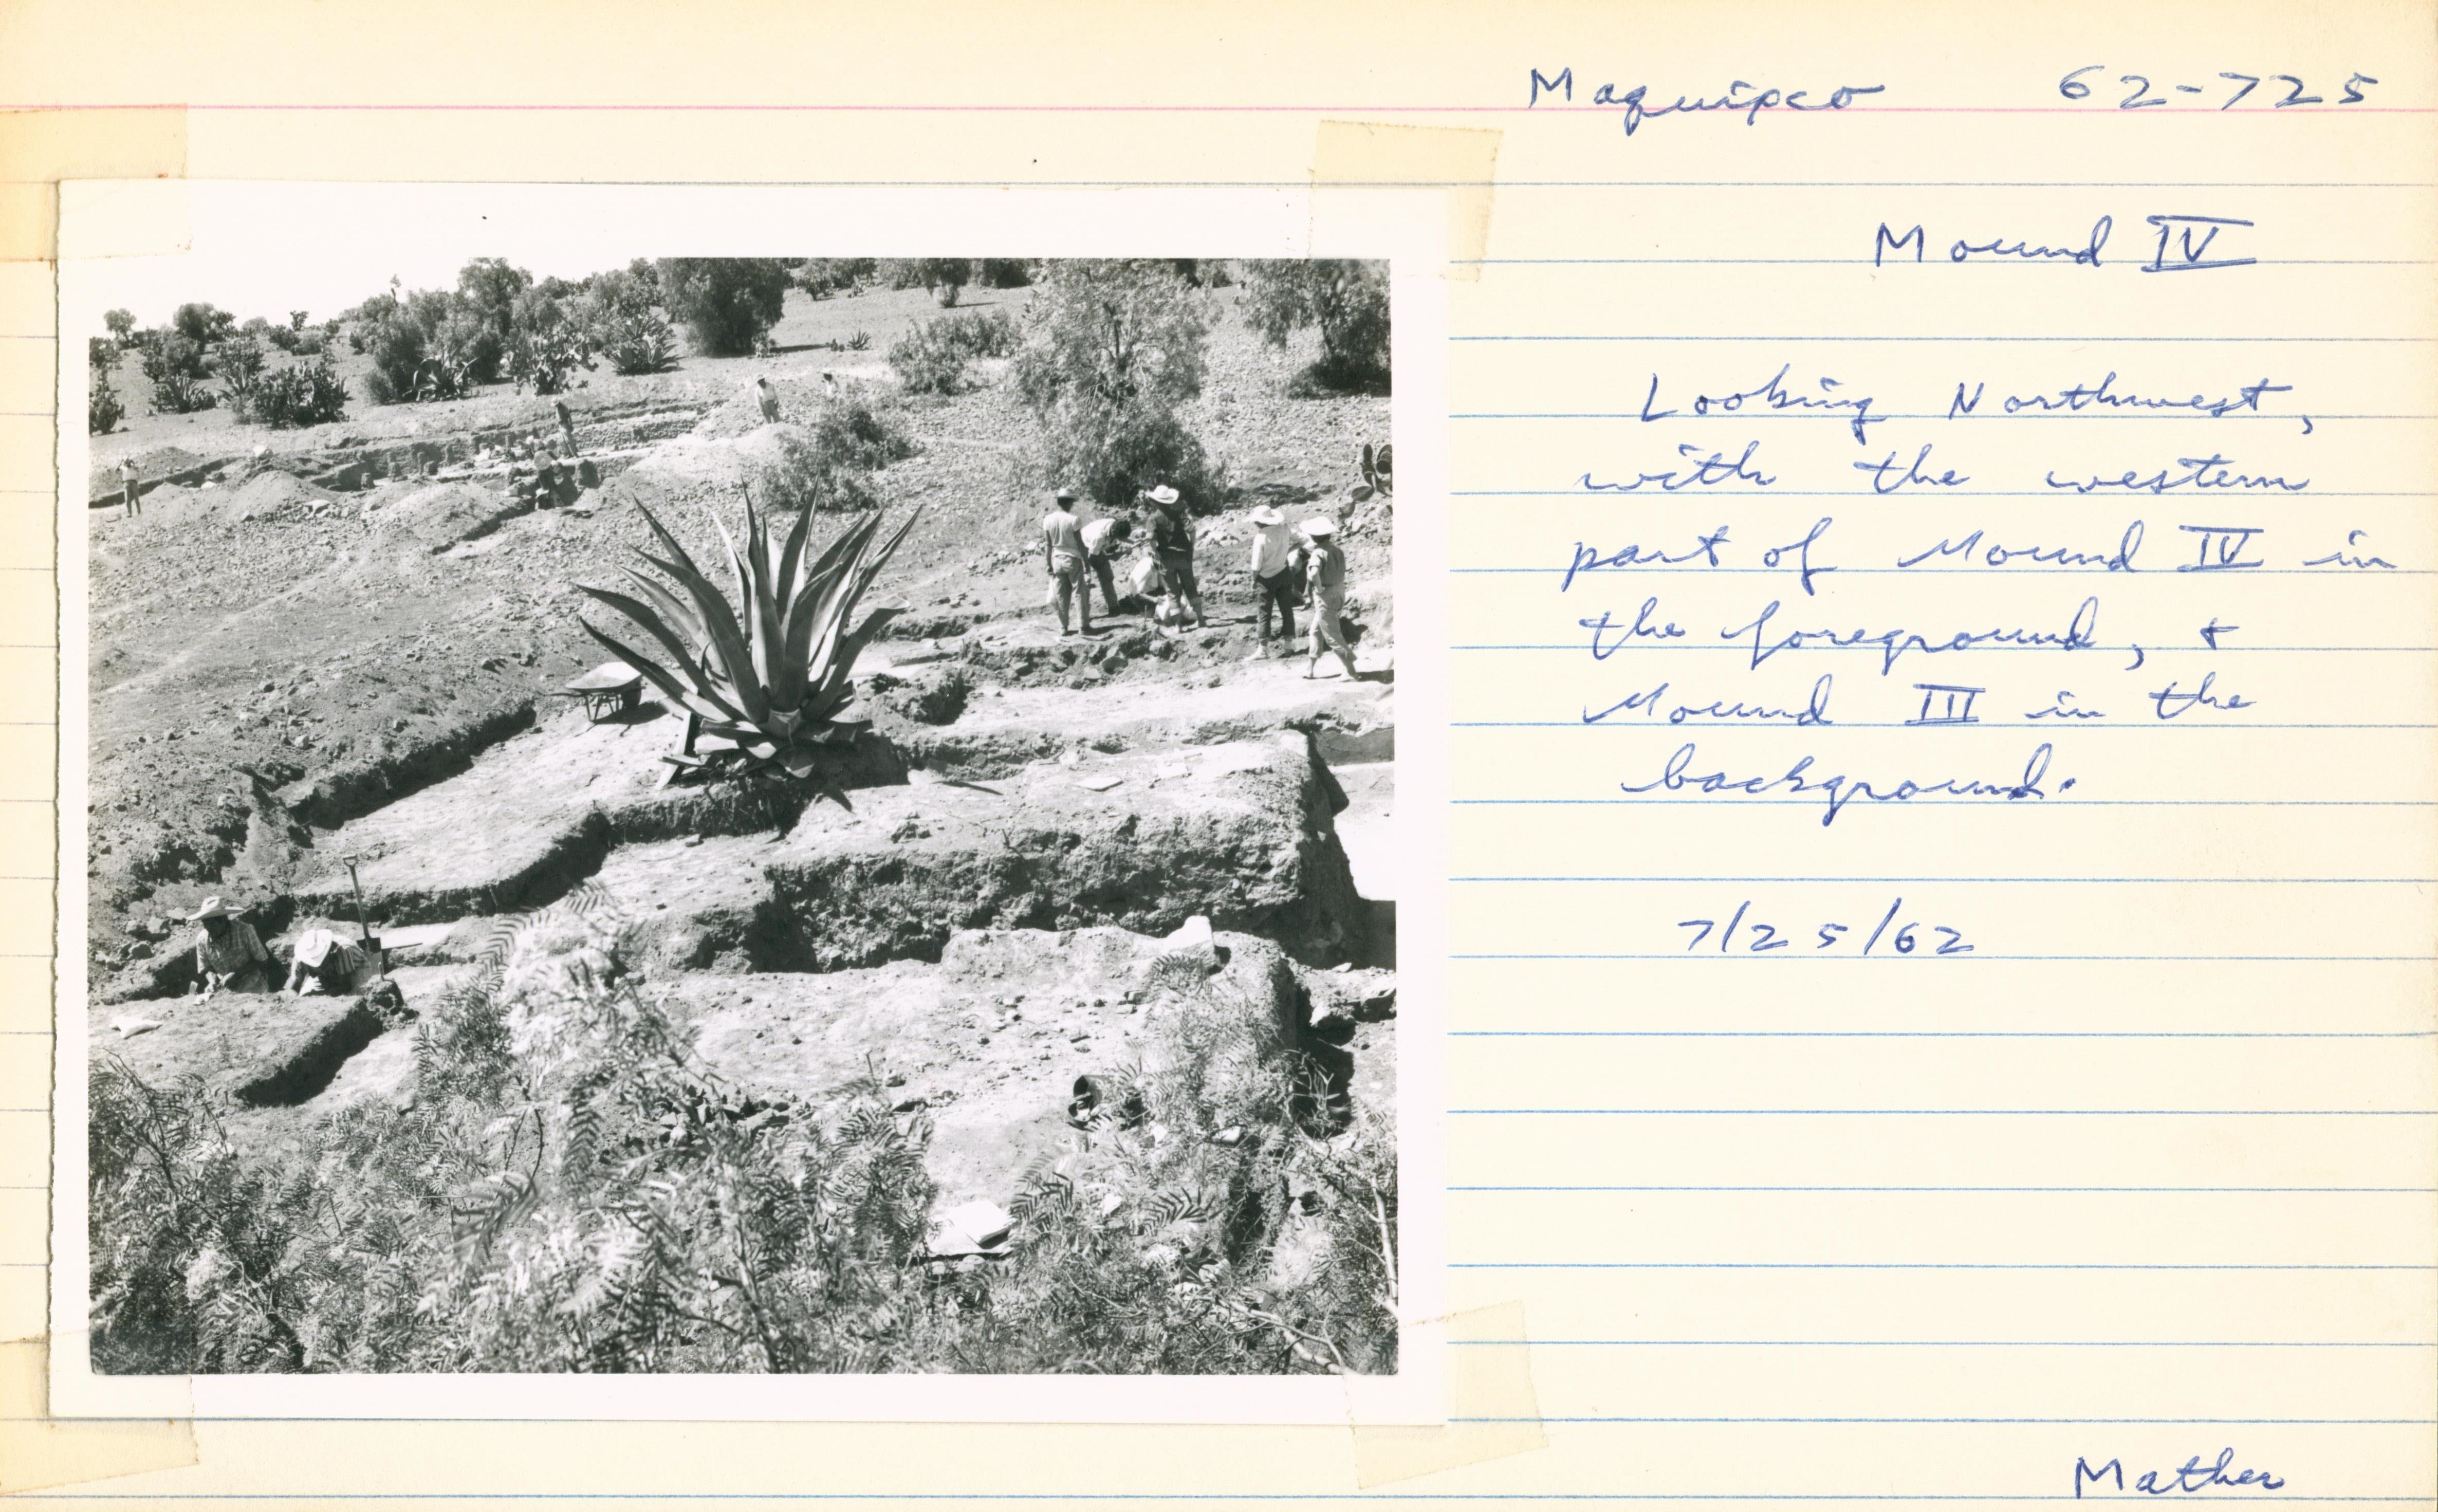 Field note card from Maquixco, Mexico archaeological excavation showing photograph of people and large aloe plant on left and field notes on right